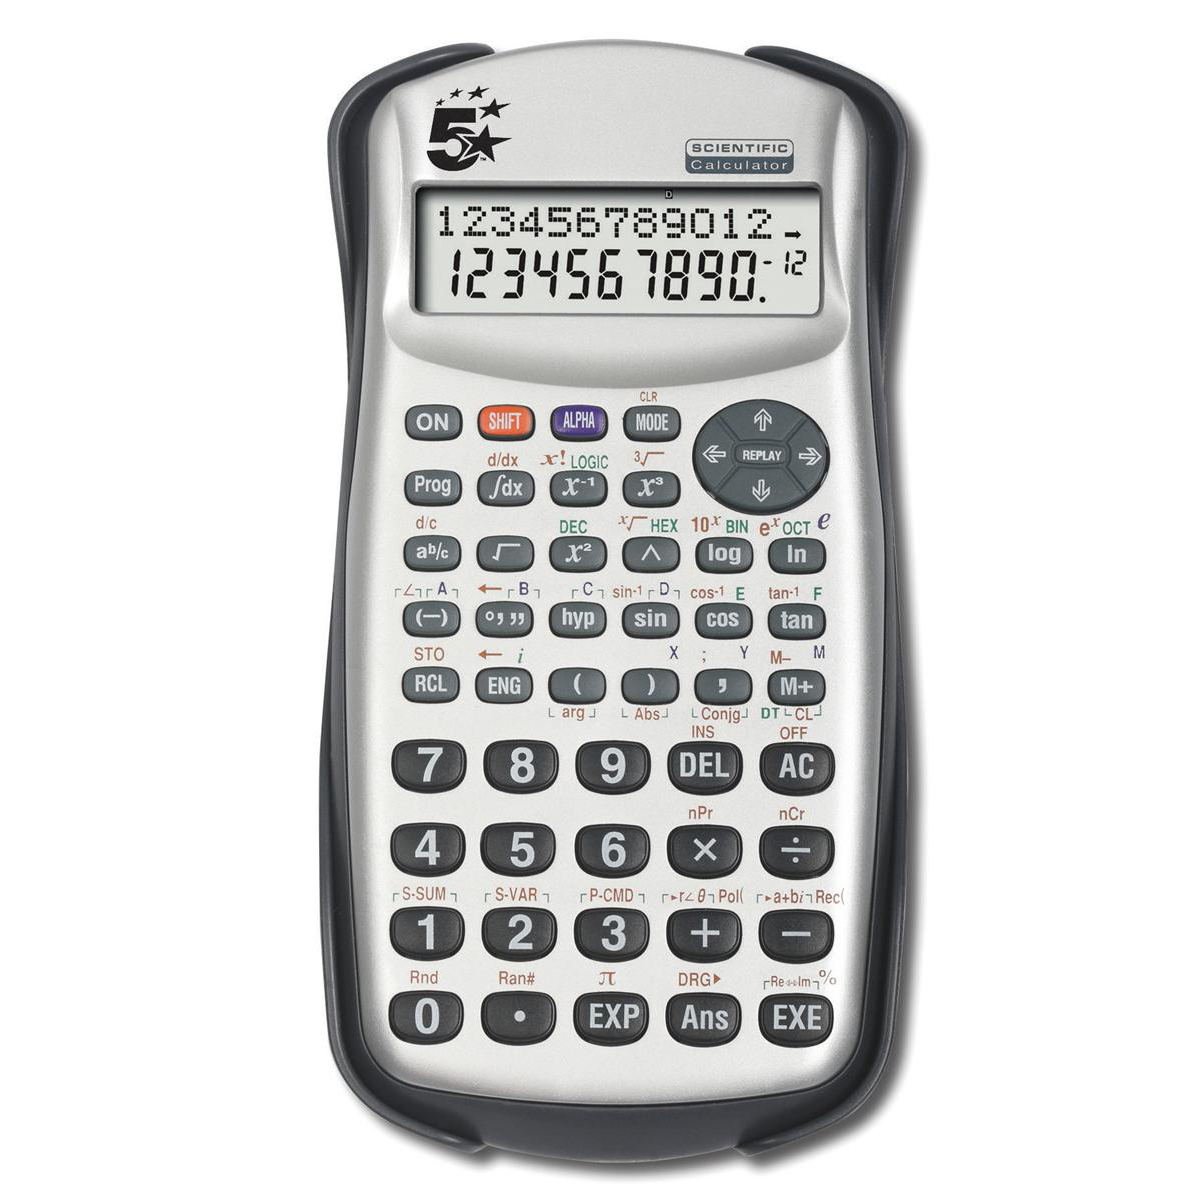 Scientific Calculator 5 Star Office Scientific Calculator 2 Line Display 279 Functions 84.5x19x164.5mm Silver/Black